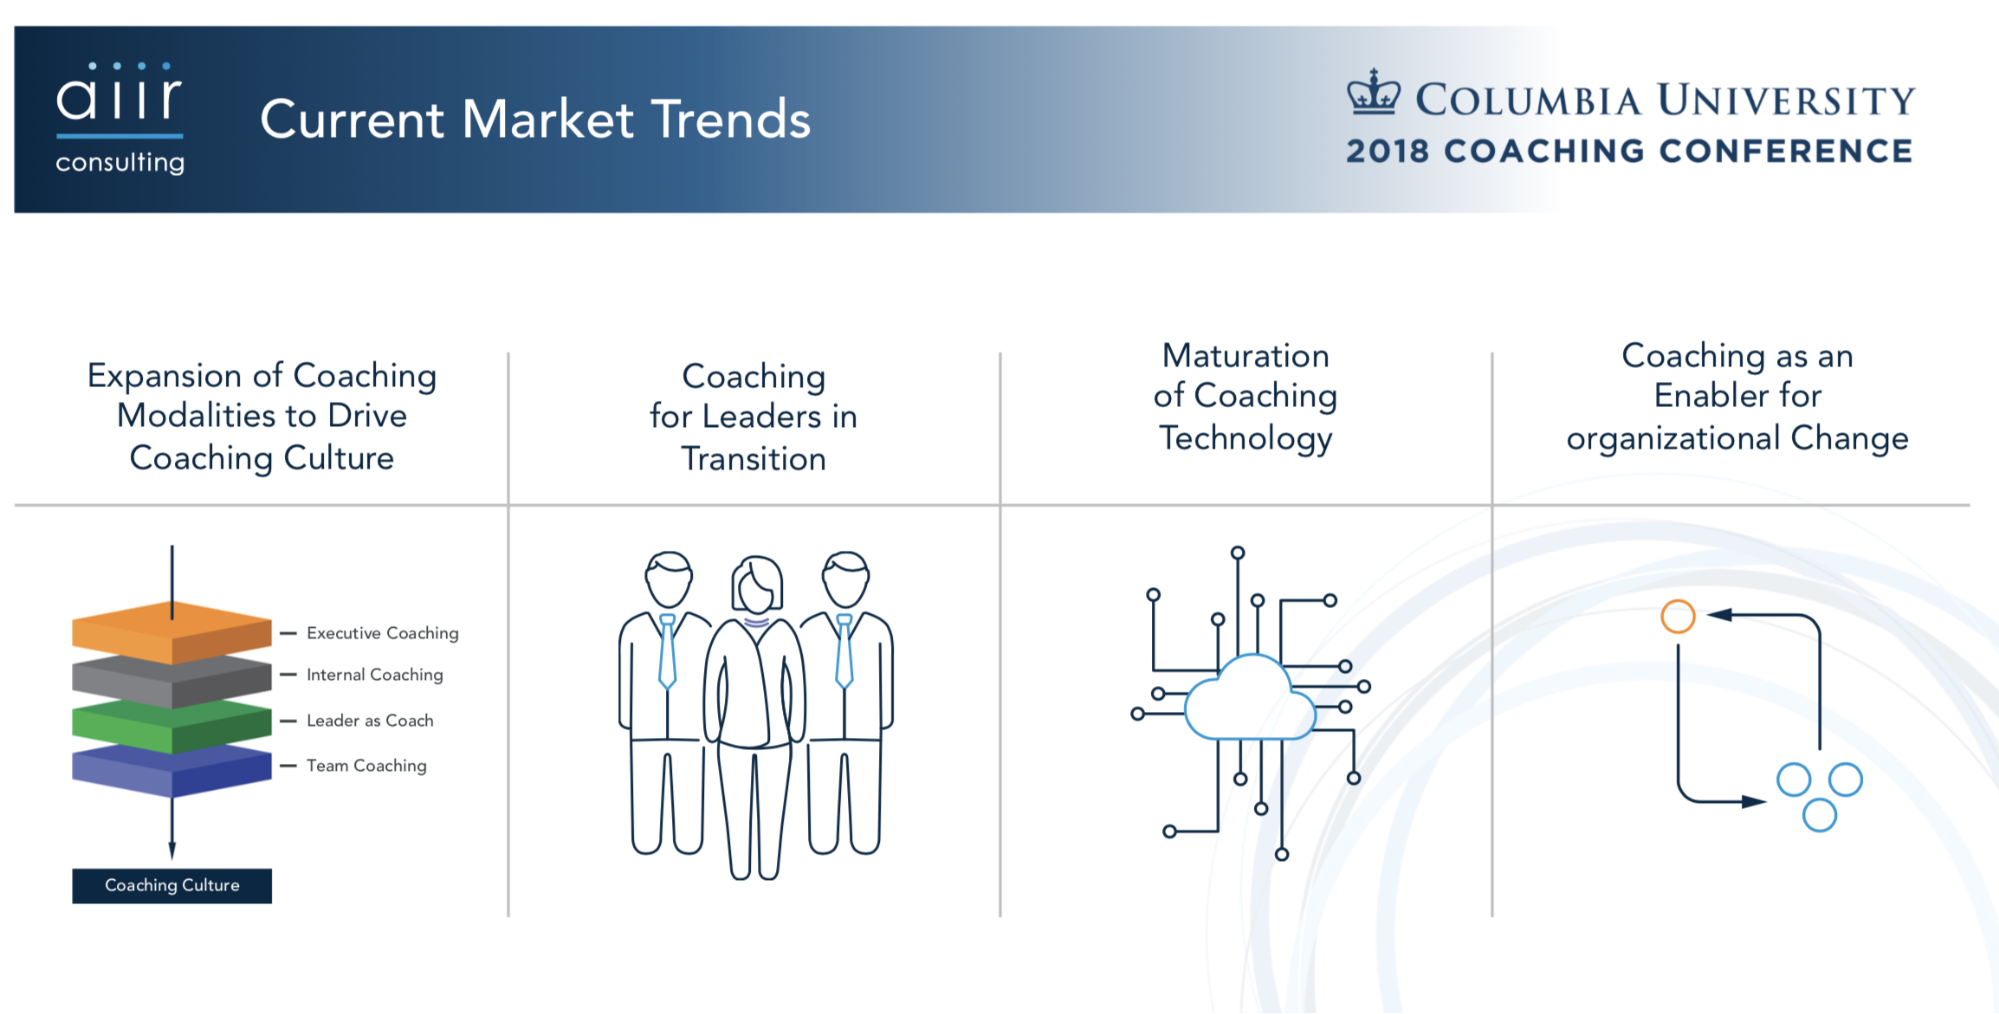 Coaching market trends for 2018-2019.